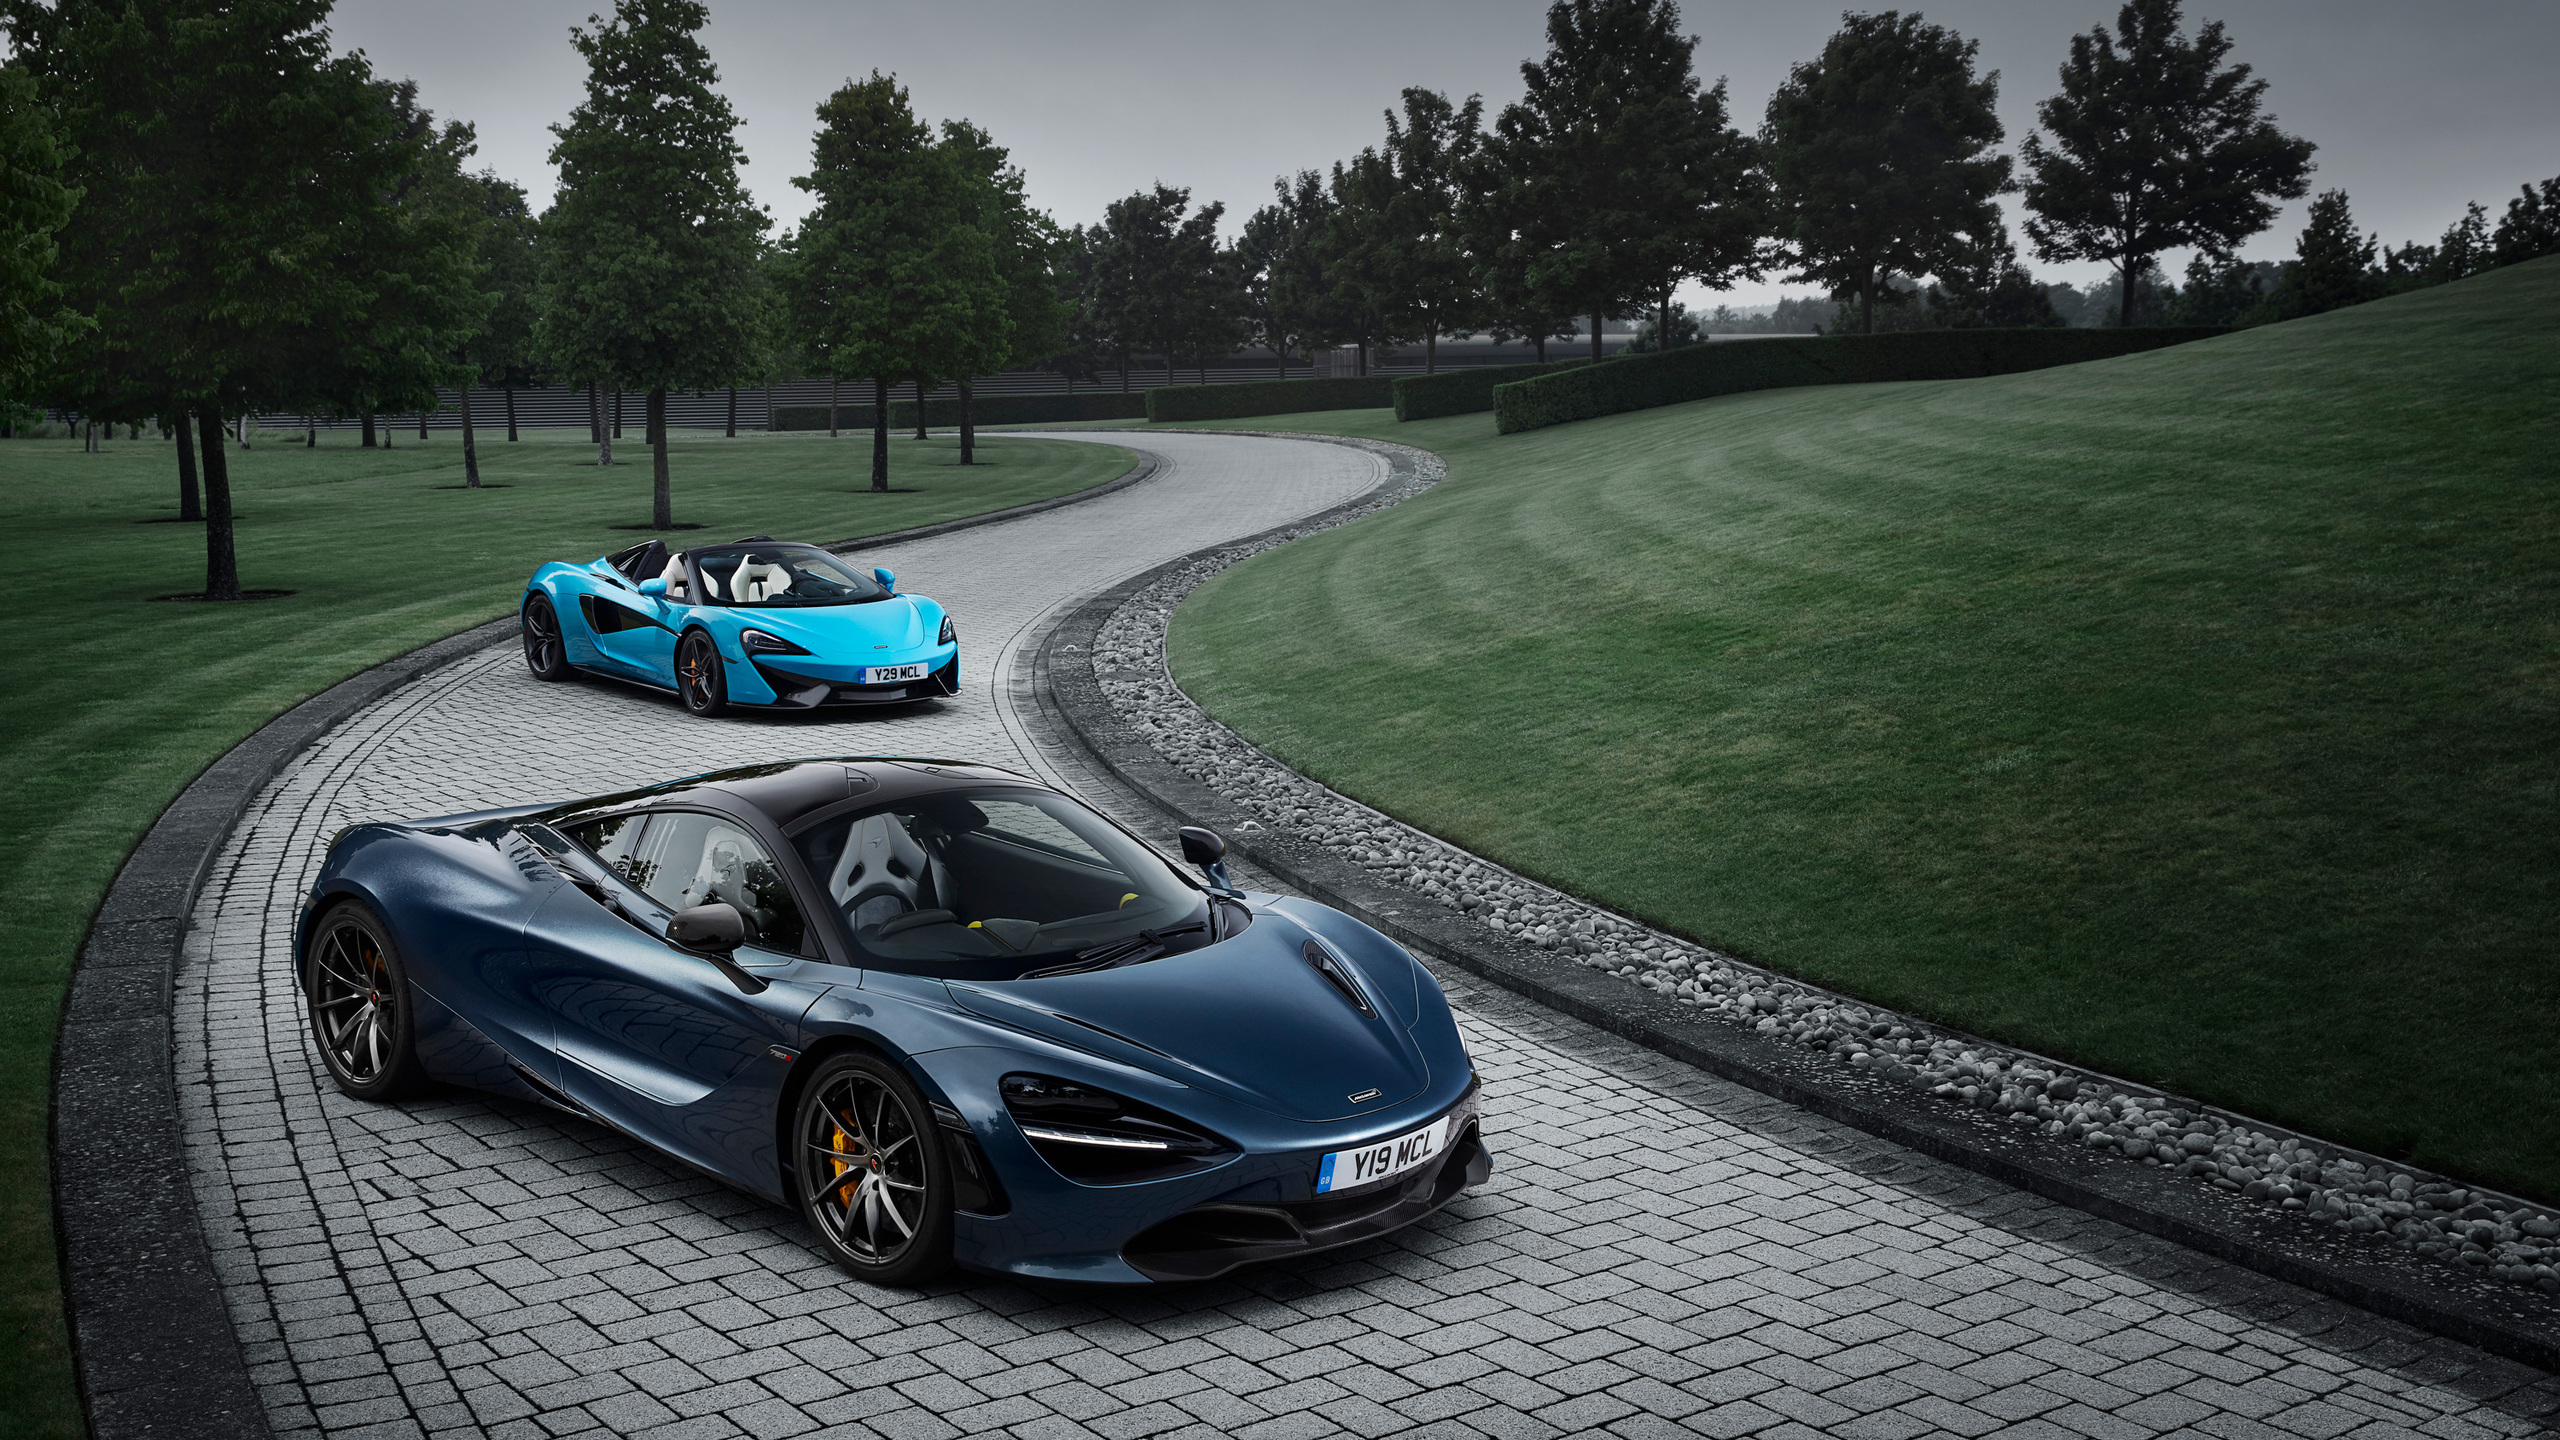 2560x1440 Mclaren 720s And Mclaren 570s Spider 1440p Resolution Hd 4k Wallpapers Images Backgrounds Photos And Pictures